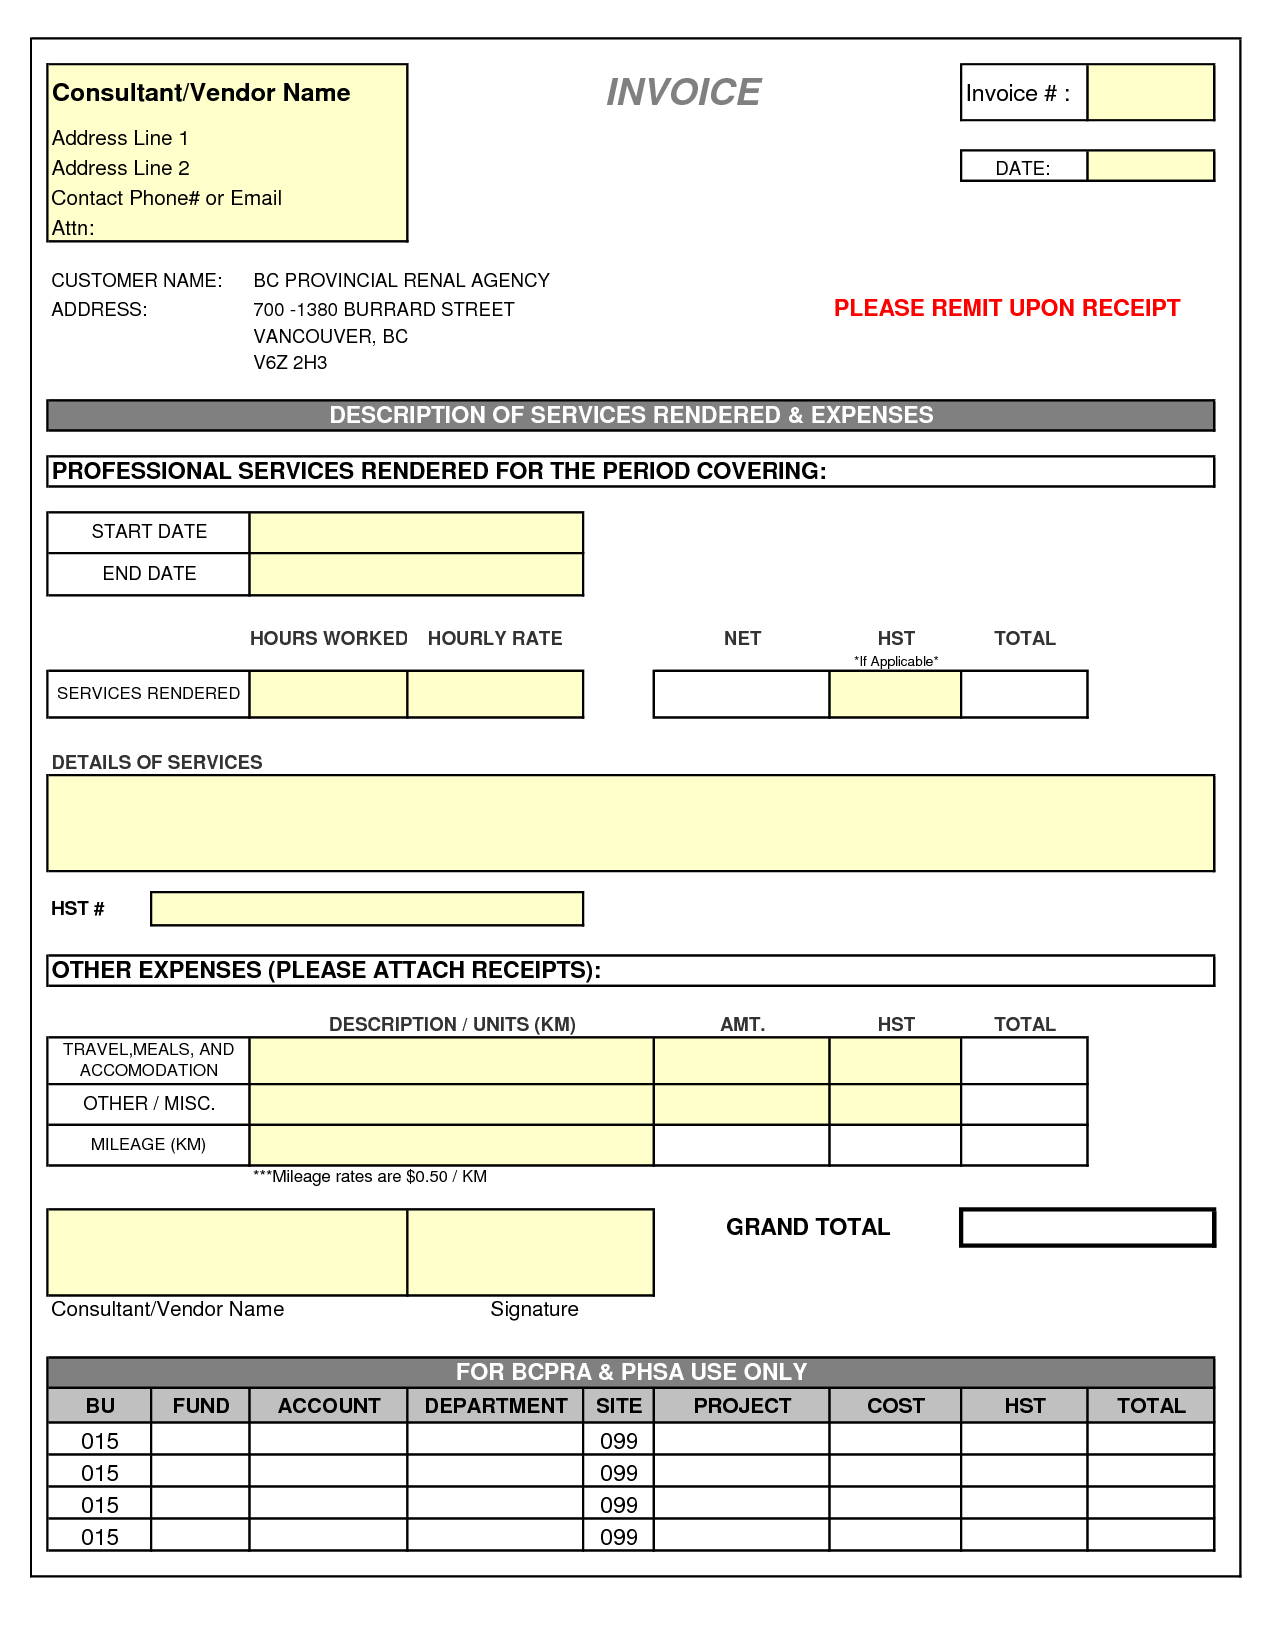 Invoice Document Template Word Consultant Invoice Template Doc  Invoice Example Sales Tax Receipt Pdf with Invoice Enclosed Envelopes Word Consultant Invoice Template Doc Consulting Invoice Template Excel   Kjtvuw Nab Invoice Finance Excel